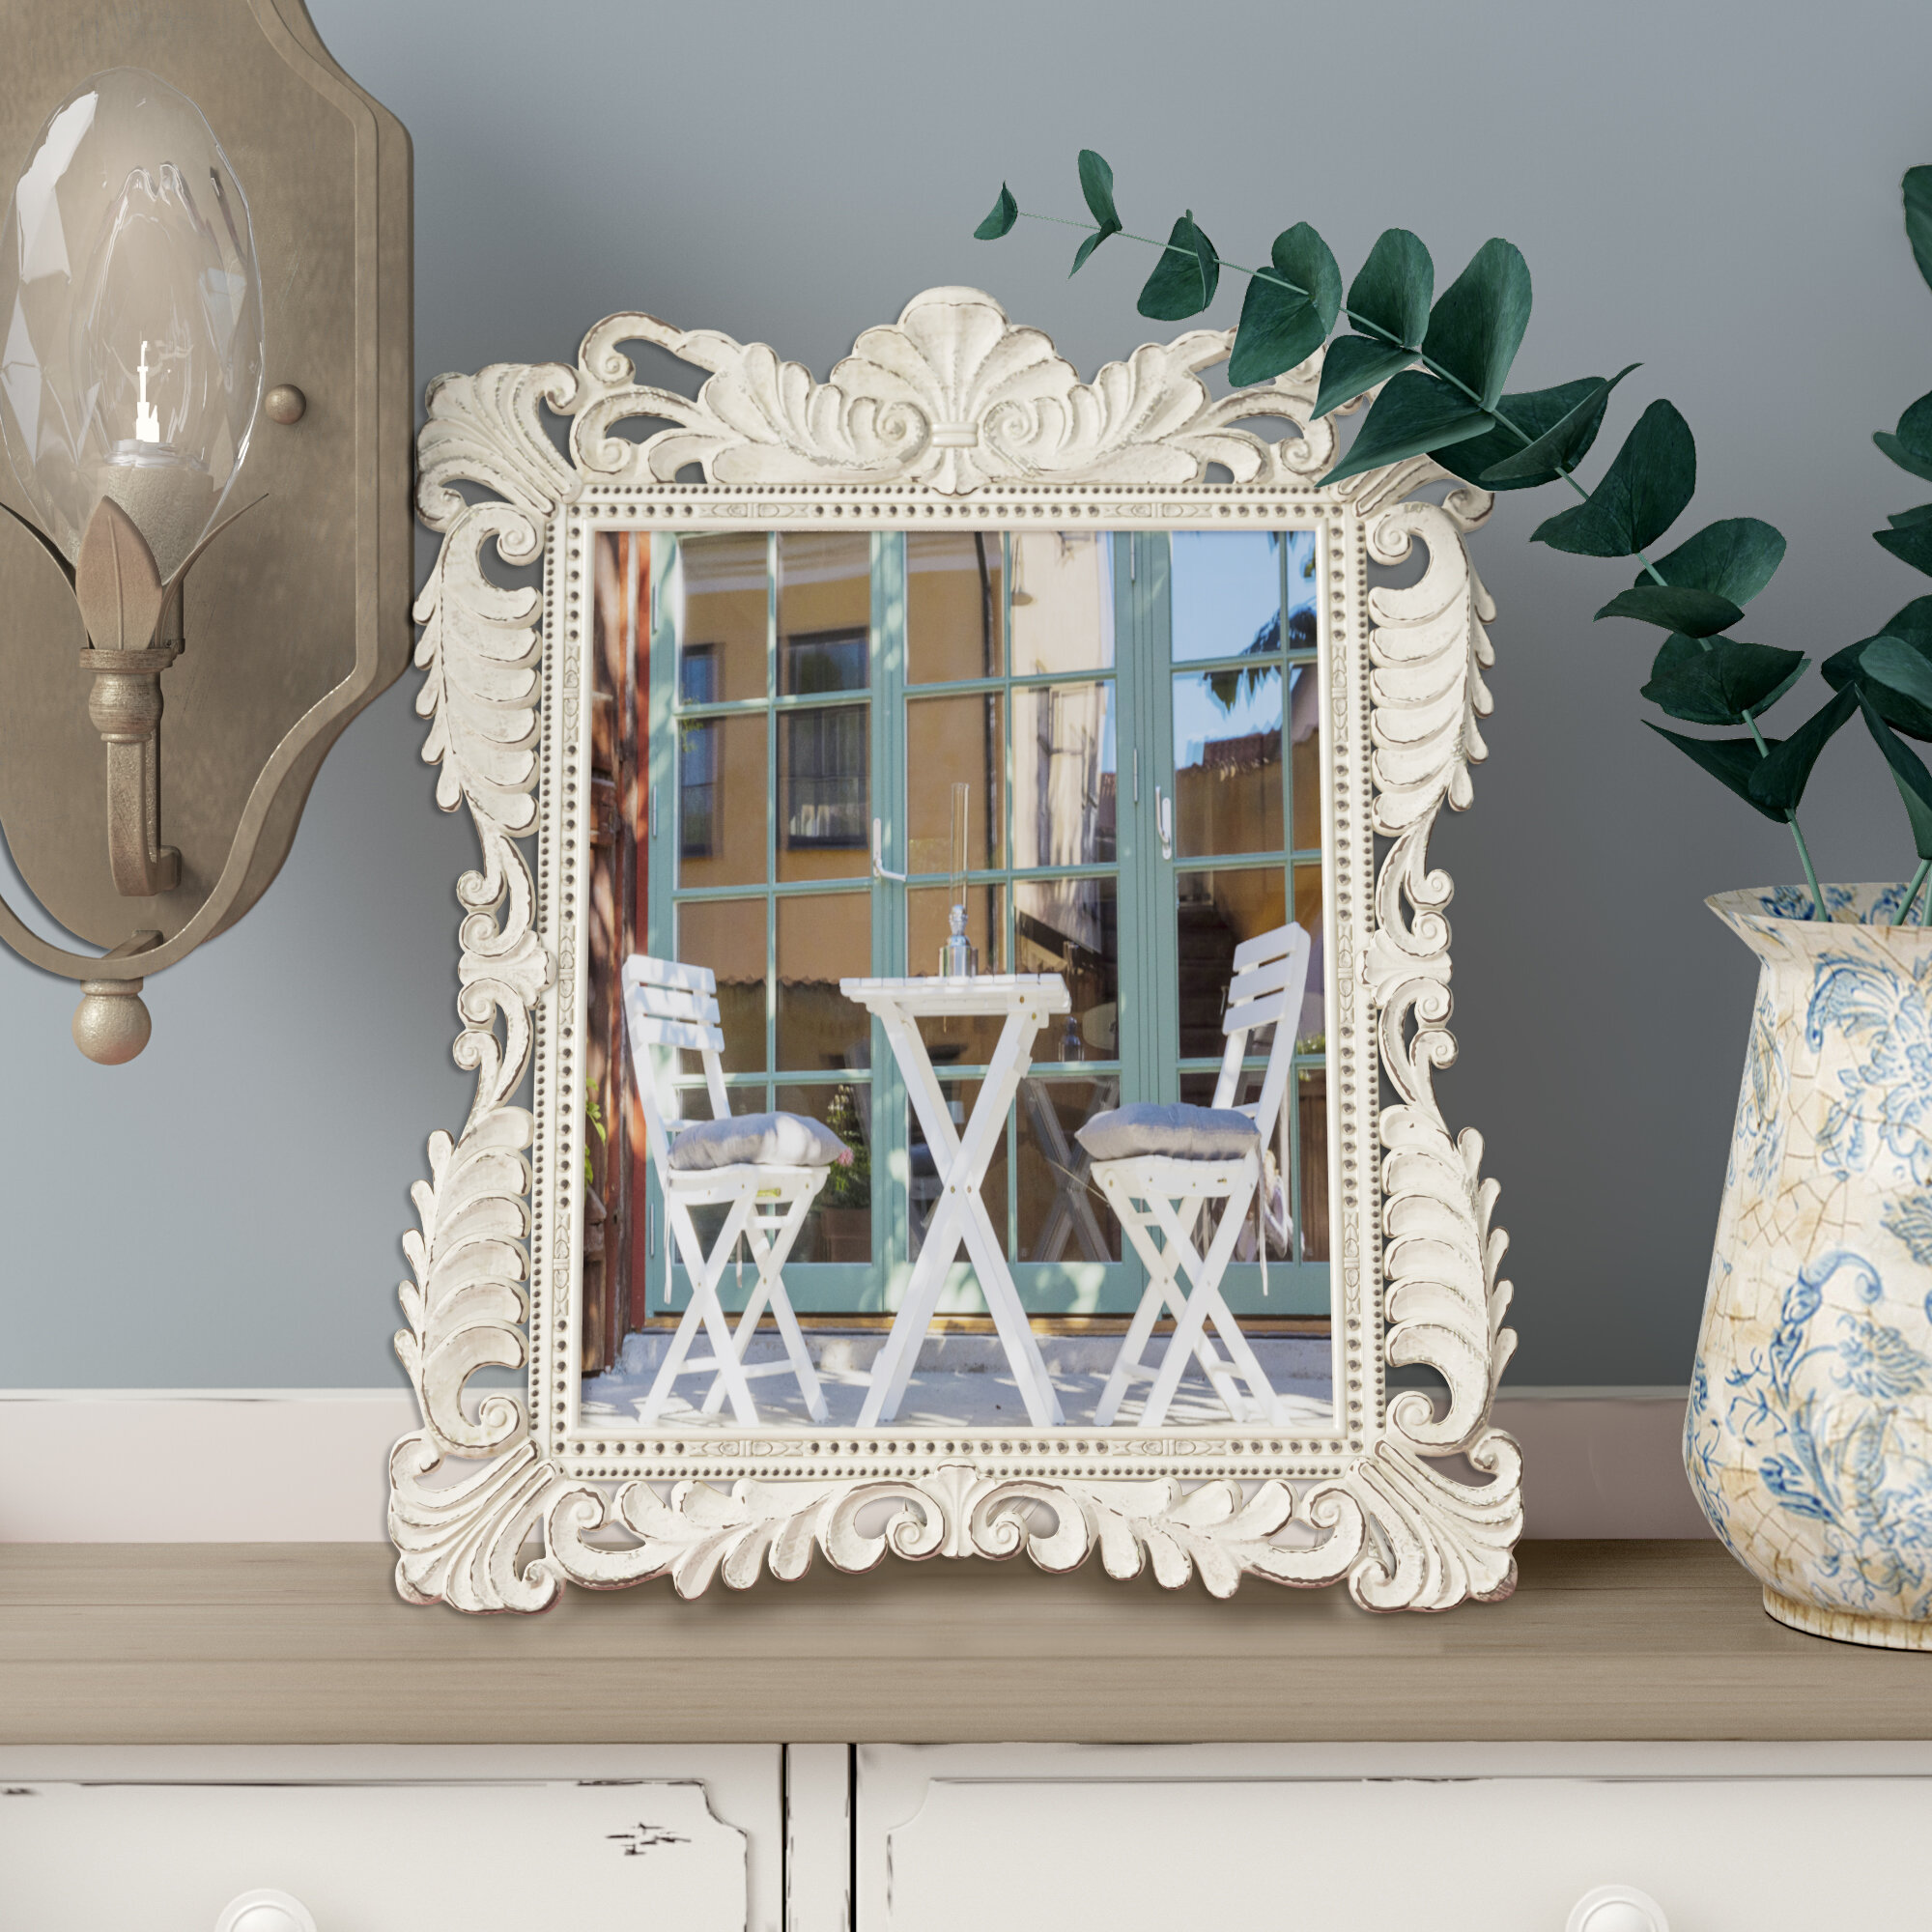 8 X 10 Wedding Picture Frames You Ll Love In 2021 Wayfair